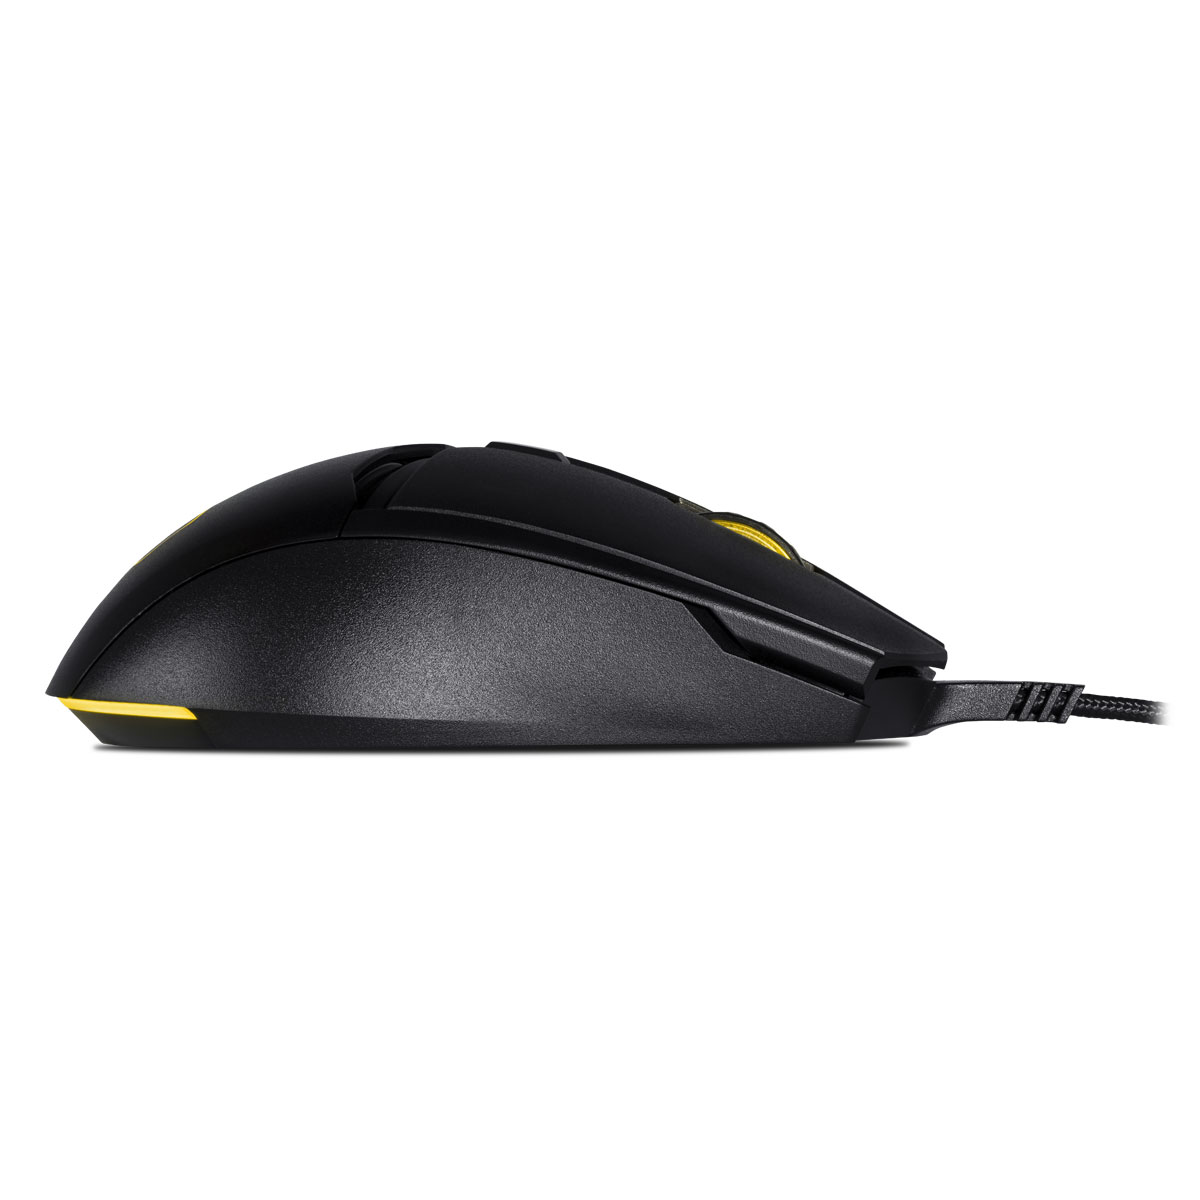 Cooler Master MasterMouse MM830 - Souris PC Cooler Master - 3